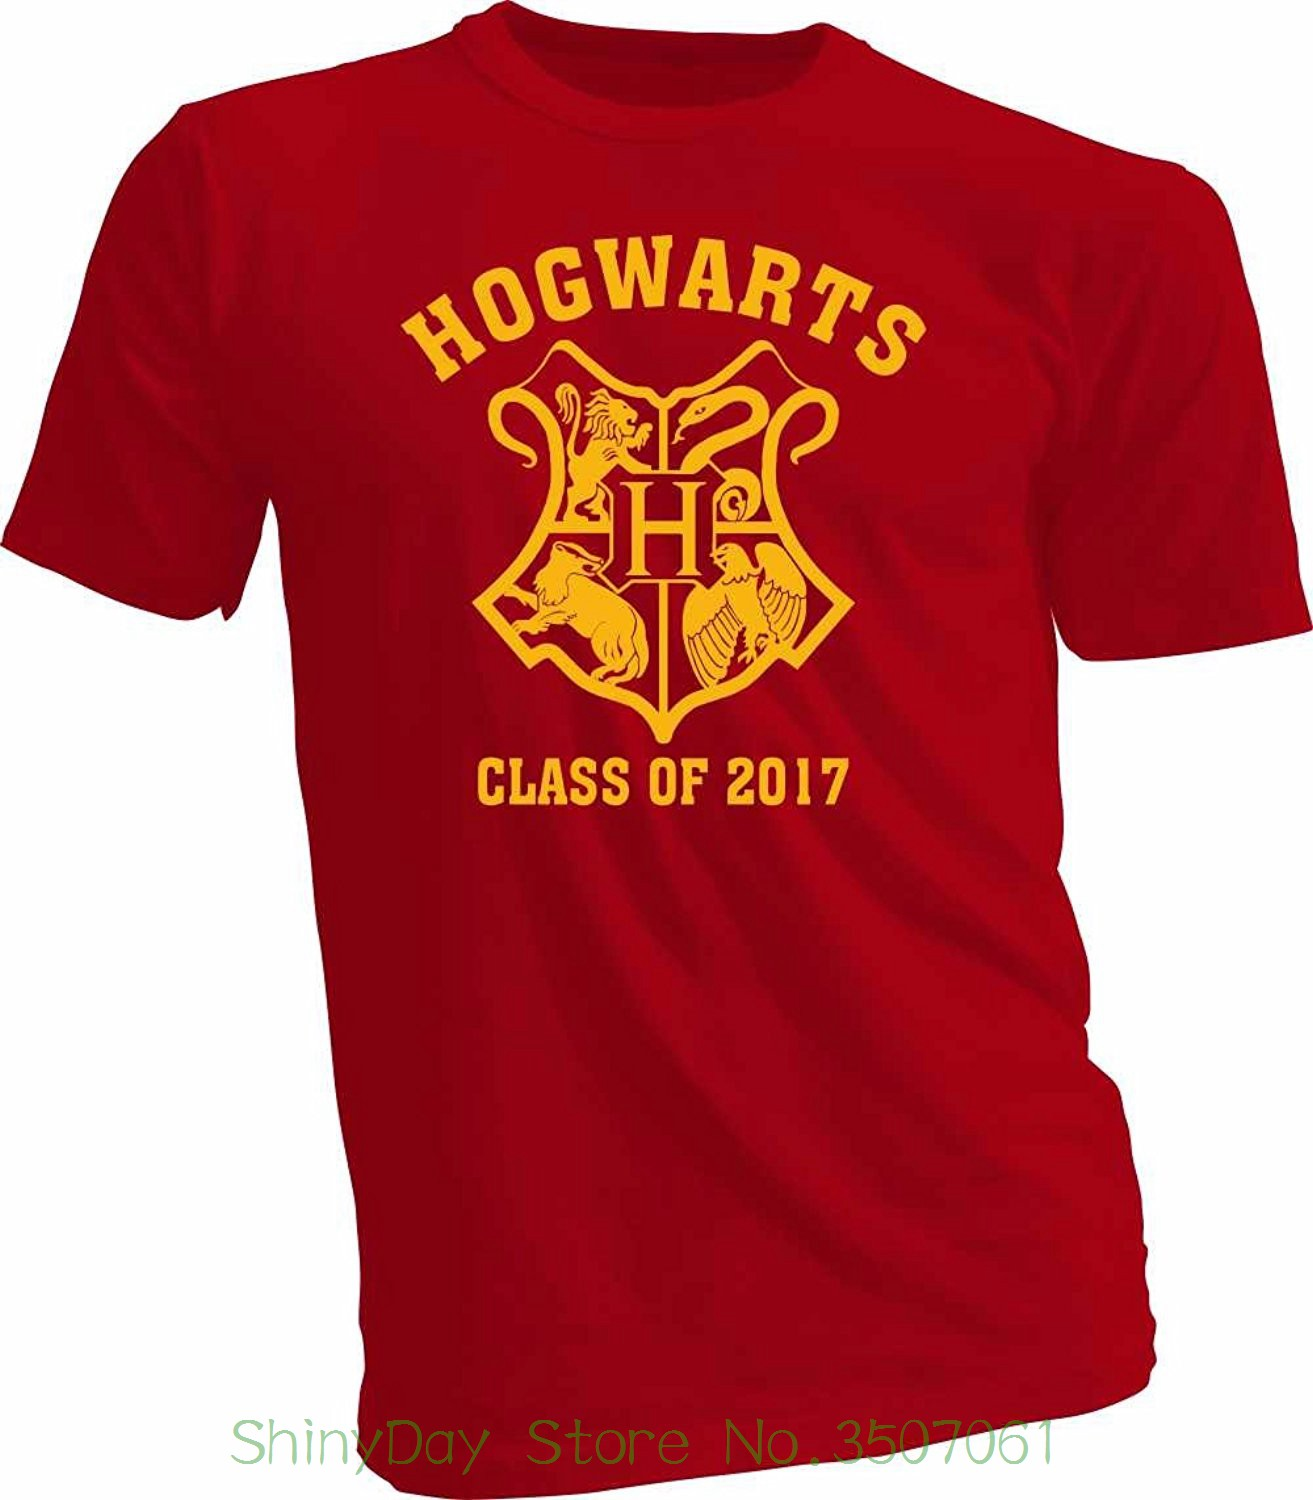 2018 Short Sleeve Cotton T Shirts Man Clothing Hogwarts Alumni Class Of 2017 Men's T-shirt